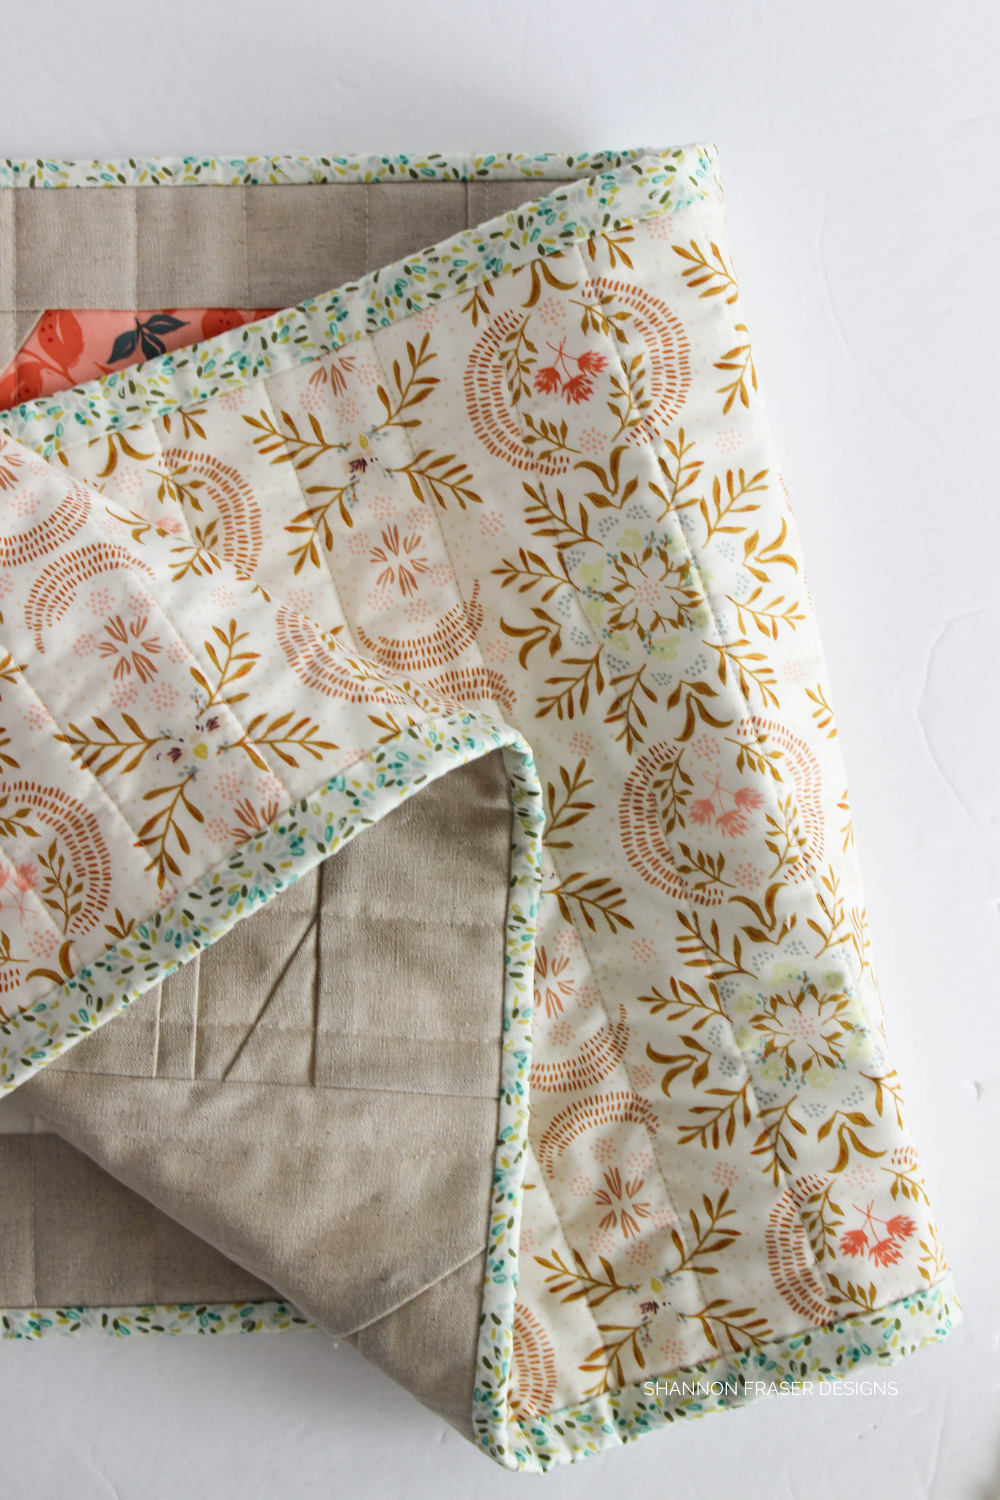 Binding detail on the Jolly Jelly quilted table runner featuring AGF Velvet | Shannon Fraser Designs #quilting